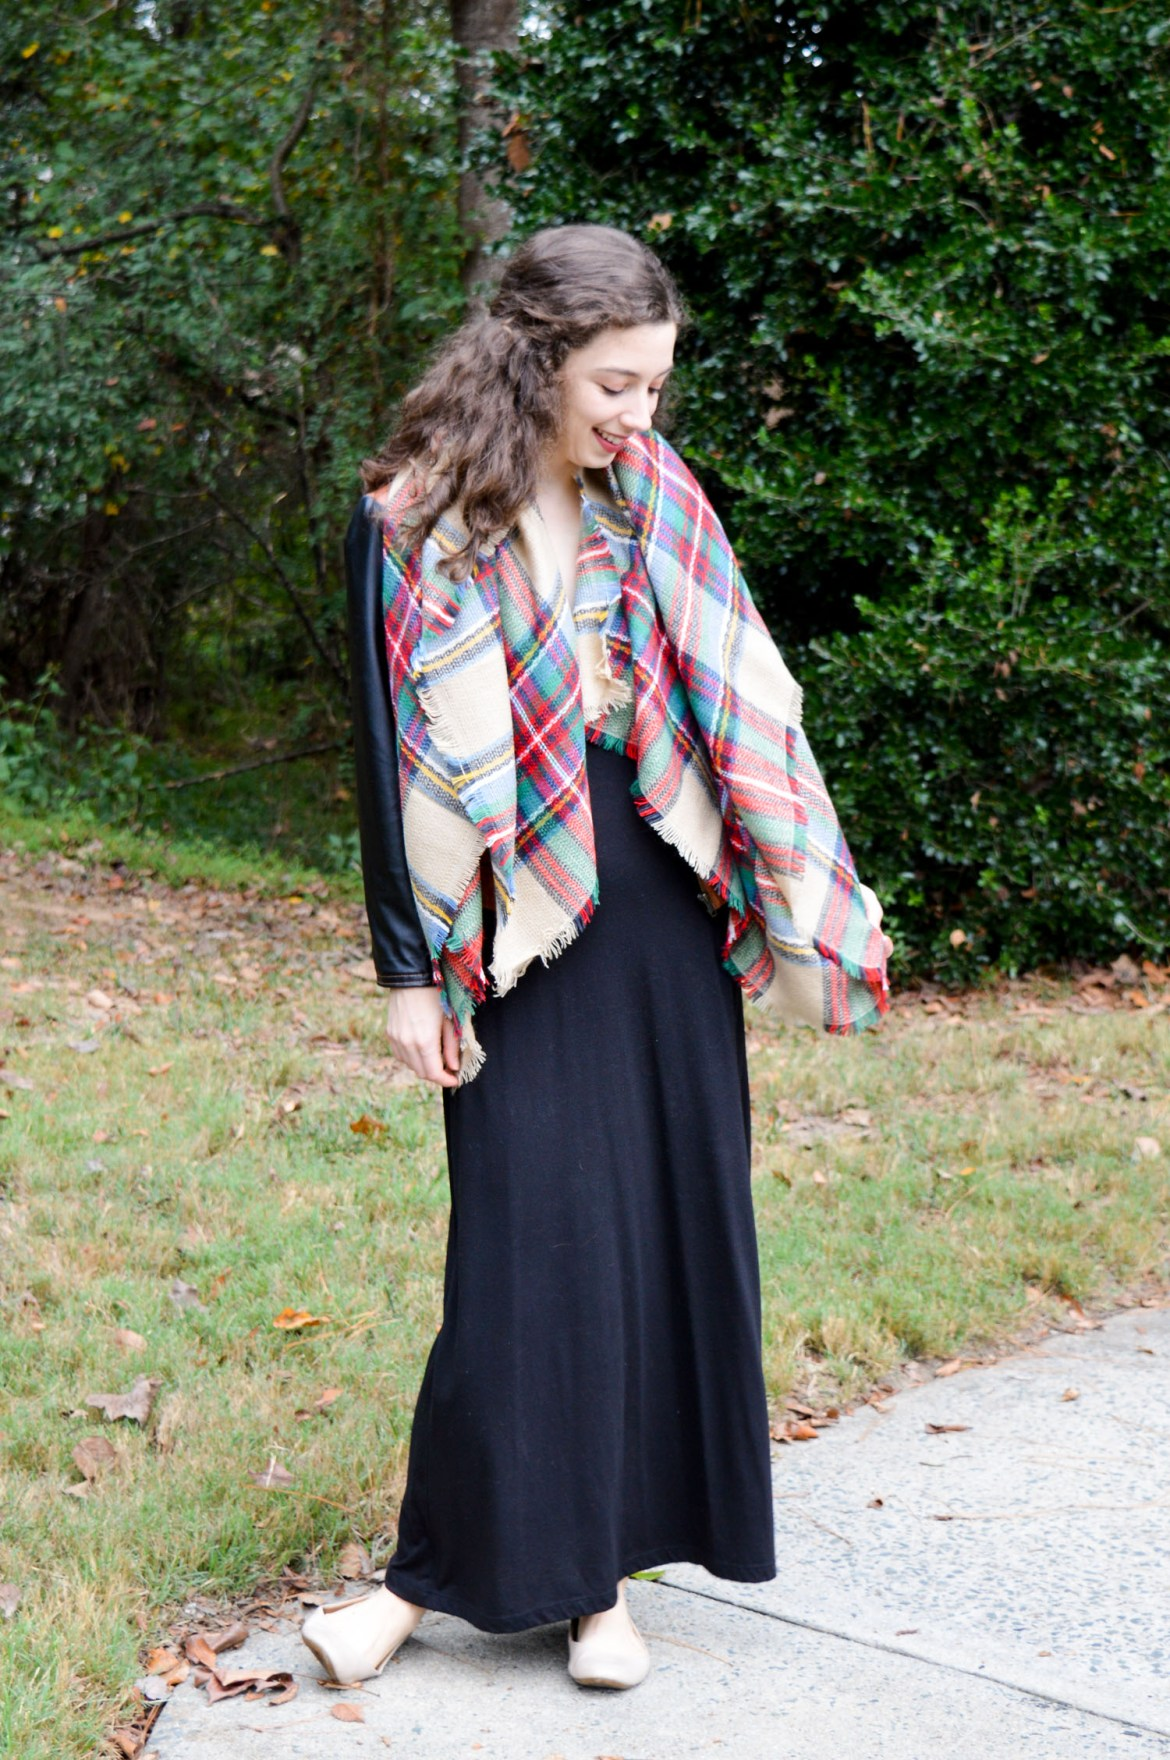 How to wear a blanket scarf as a cozy stole